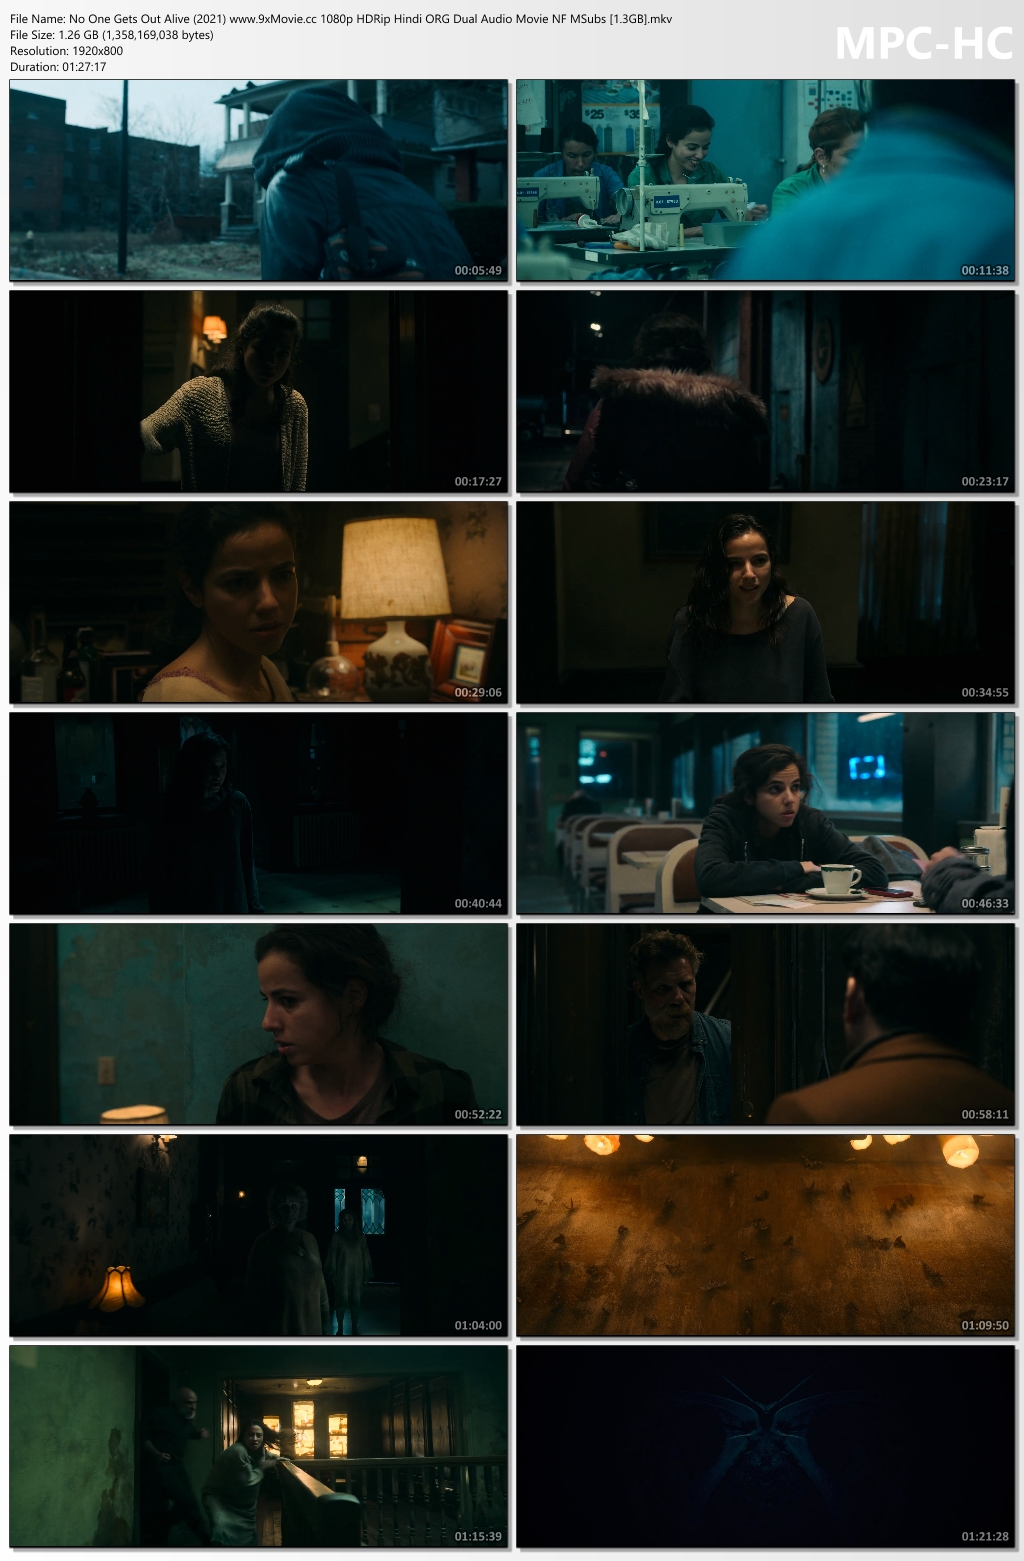 No-One-Gets-Out-Alive-2021-www-9x-Movie-cc-1080p-HDRip-Hindi-ORG-Dual-Audio-Movie-NF-MSubs-1-3-GB-mk